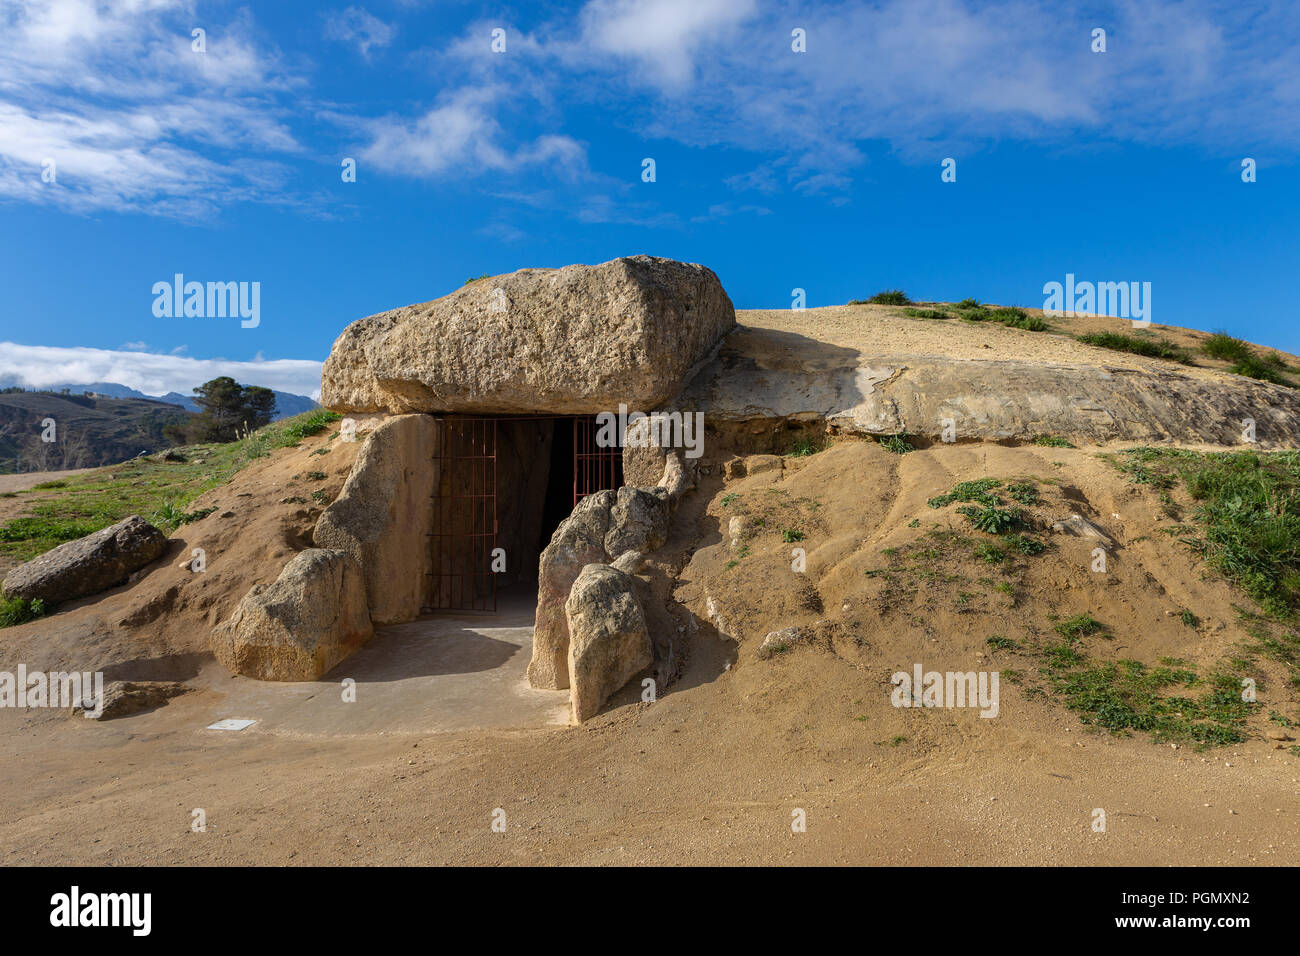 The Dolmen de Menga is in the Spanish town of Antequera (Málaga). It is a covered gallery dolmen and almost rectangular plant, dating from the 3rd mil - Stock Image